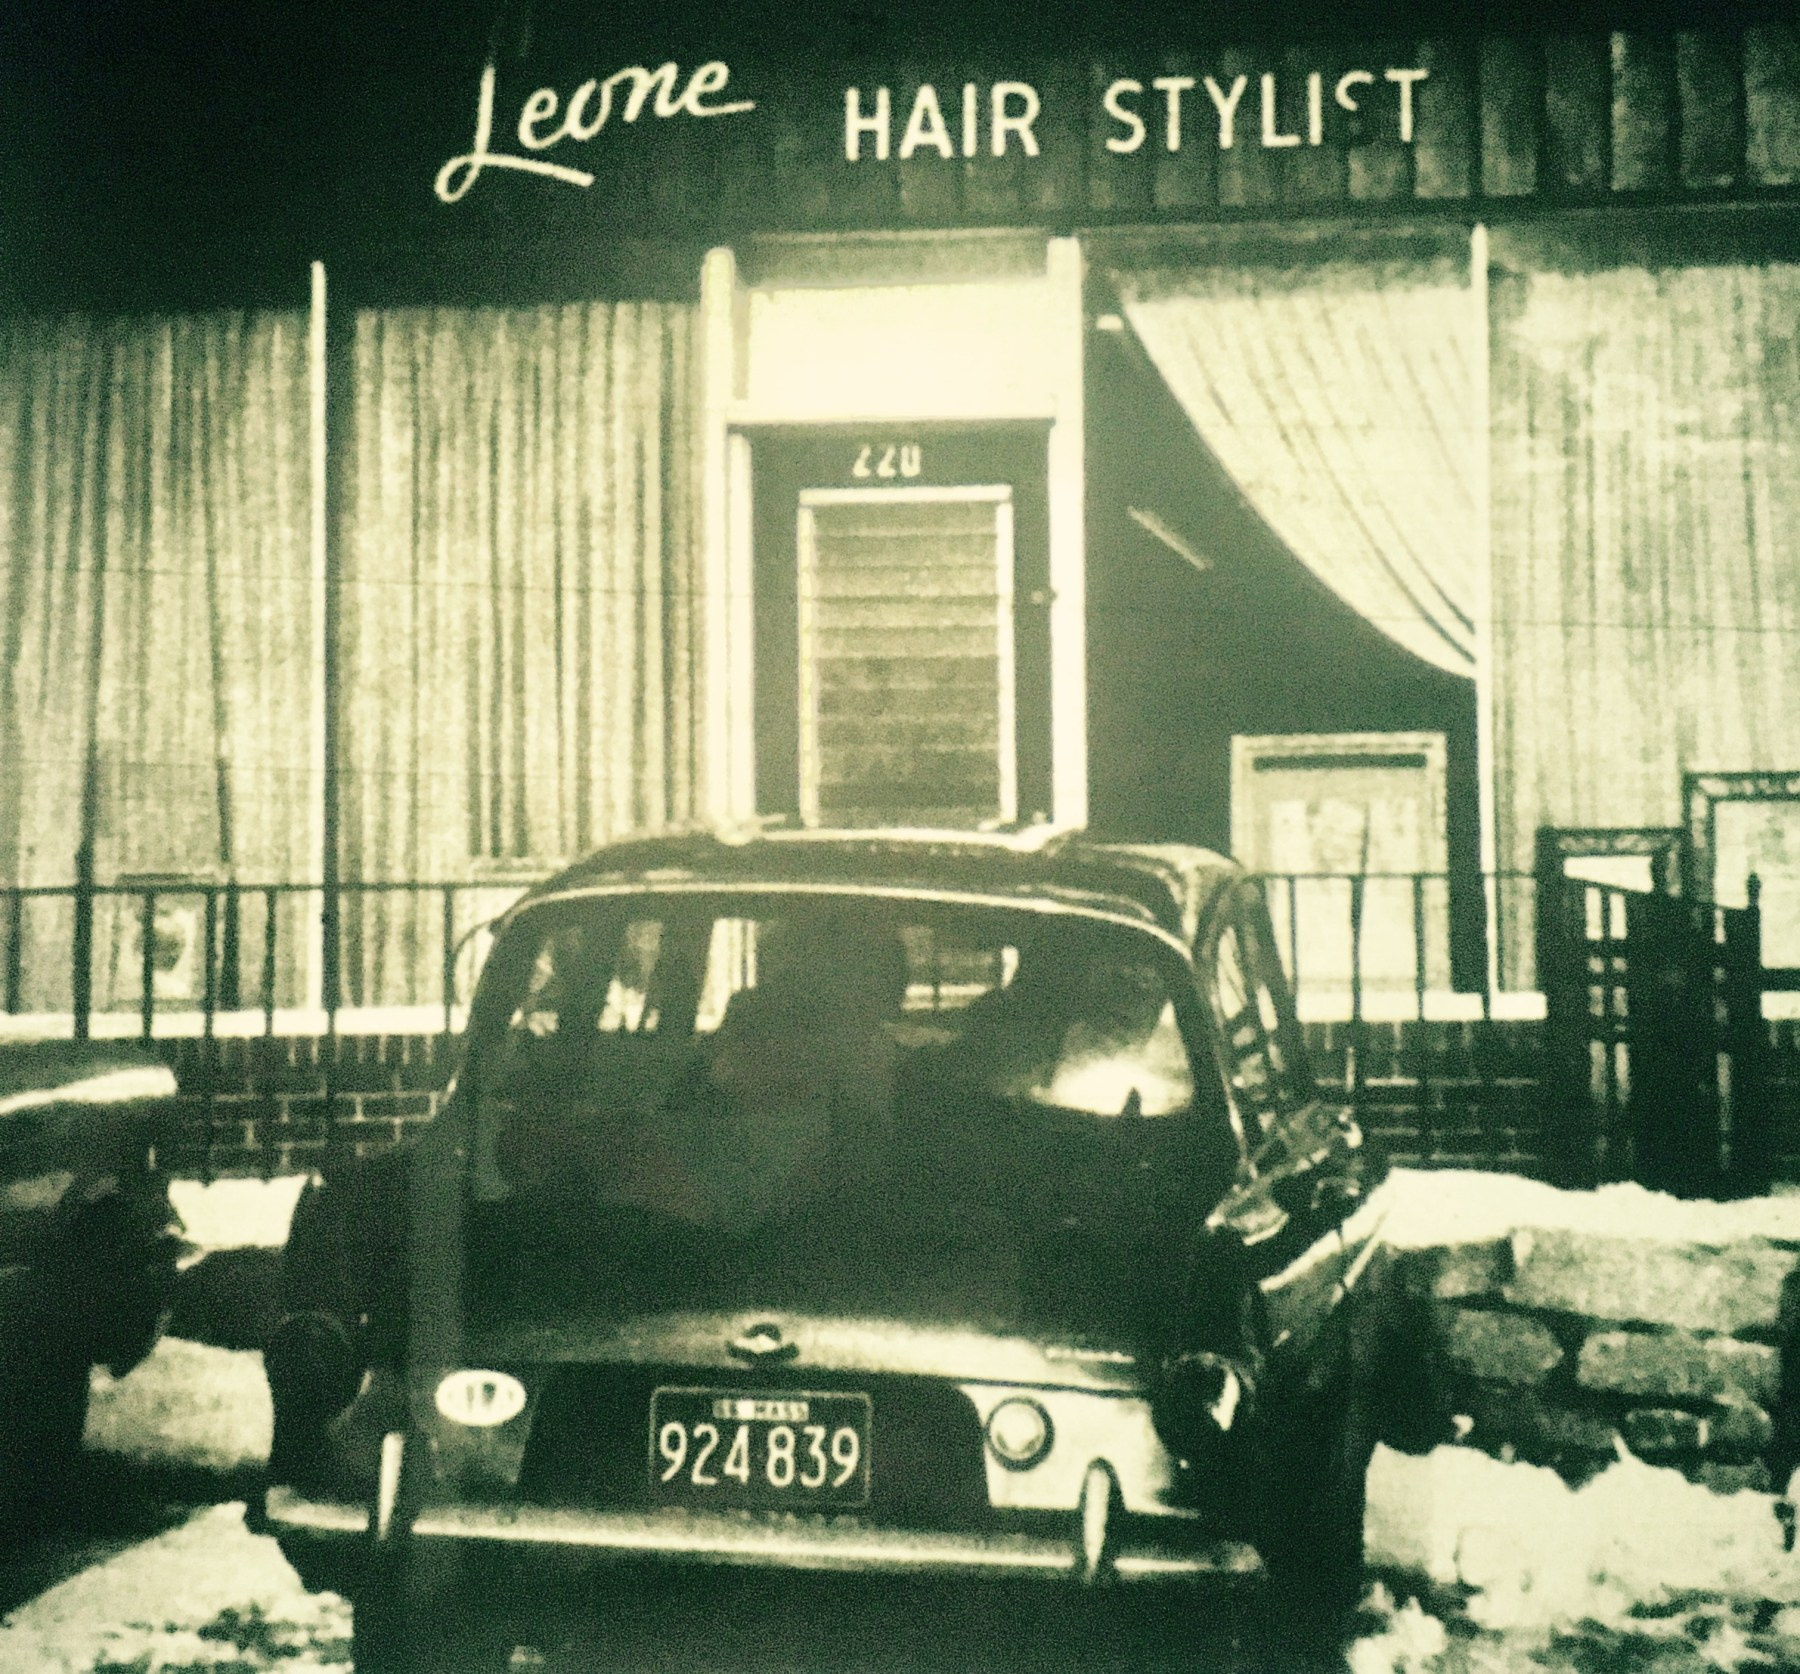 Leone Hair Stylist, Burlington MA